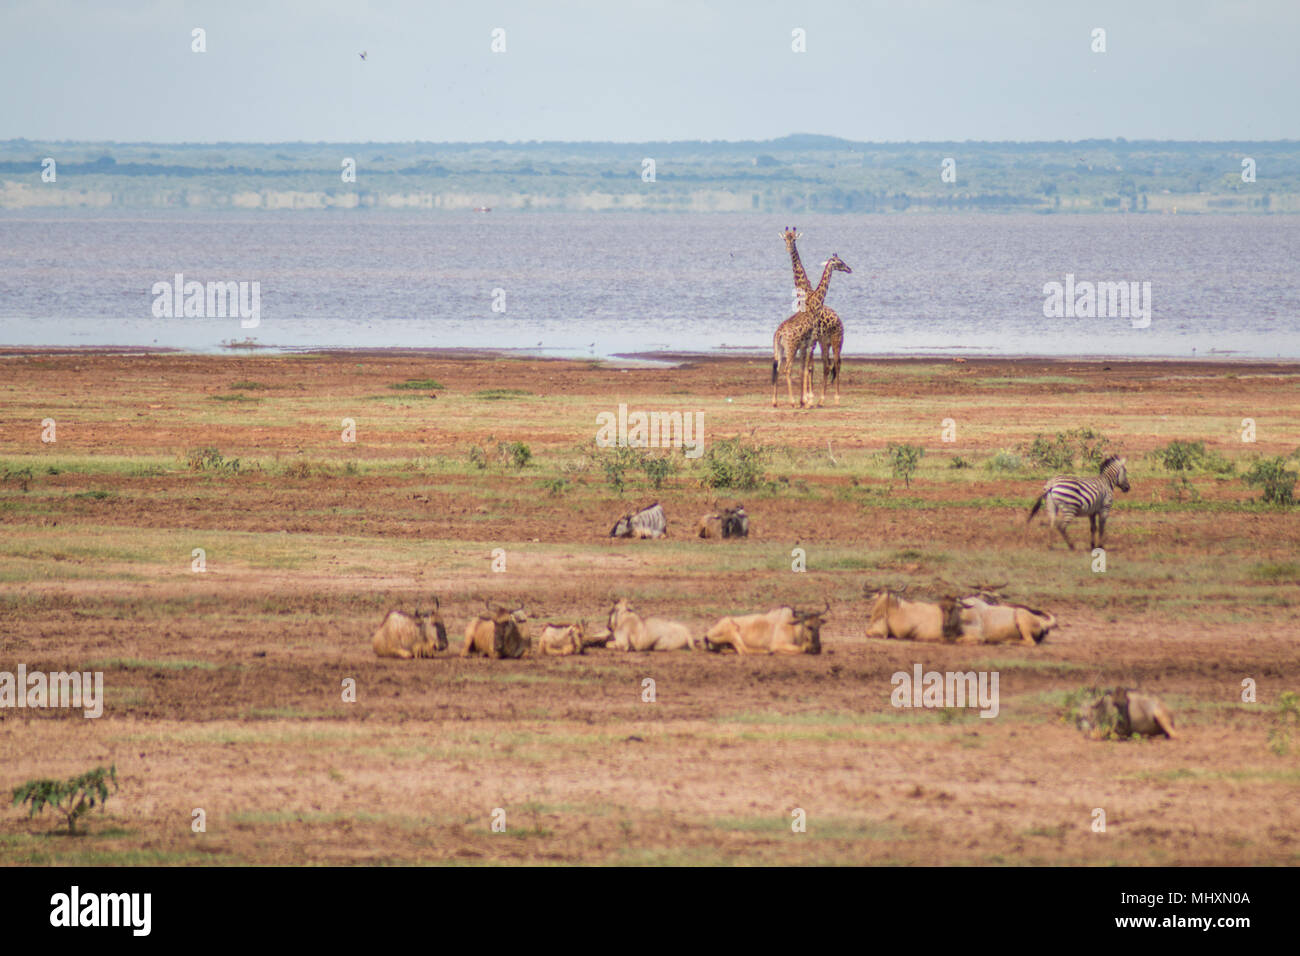 animals relaxing in the Lake Manyara, Tanzania - Stock Image